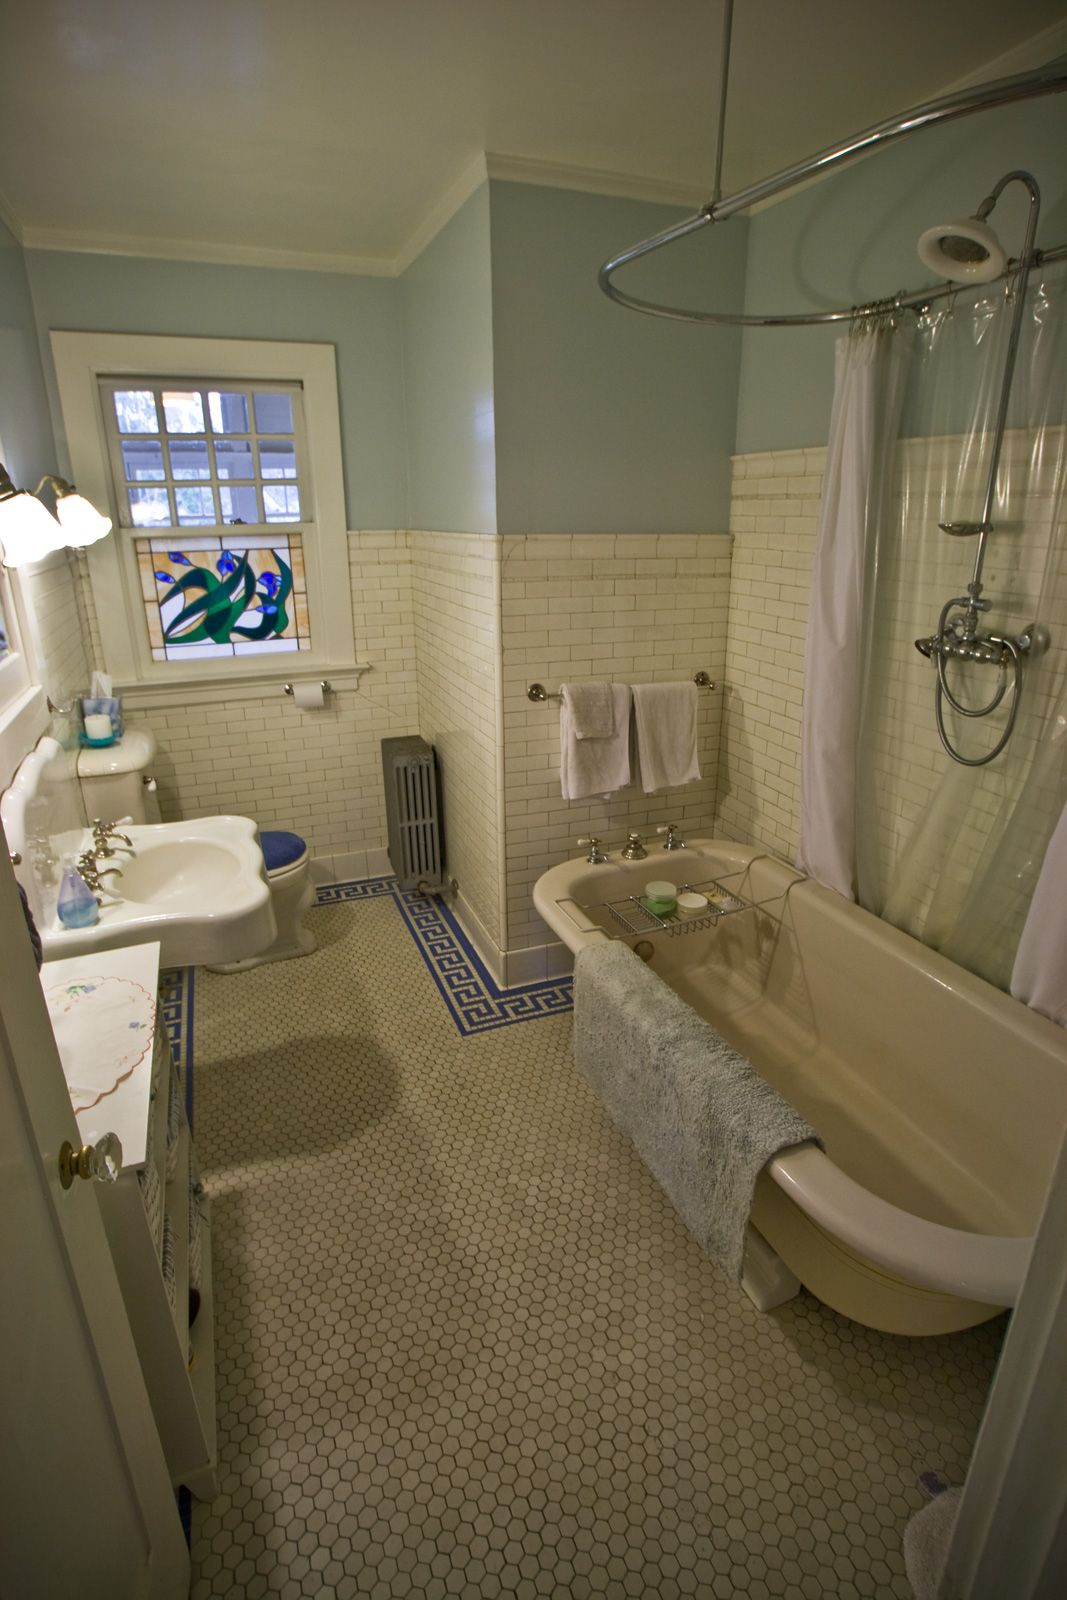 Genial 1910 Gem Of A Montlake Craftsman (in Seattle, WA): Upstairs Bathroom With  Original Tile And Bathtub. Like Subway Tile On Wall And Hexagon Floor Tile